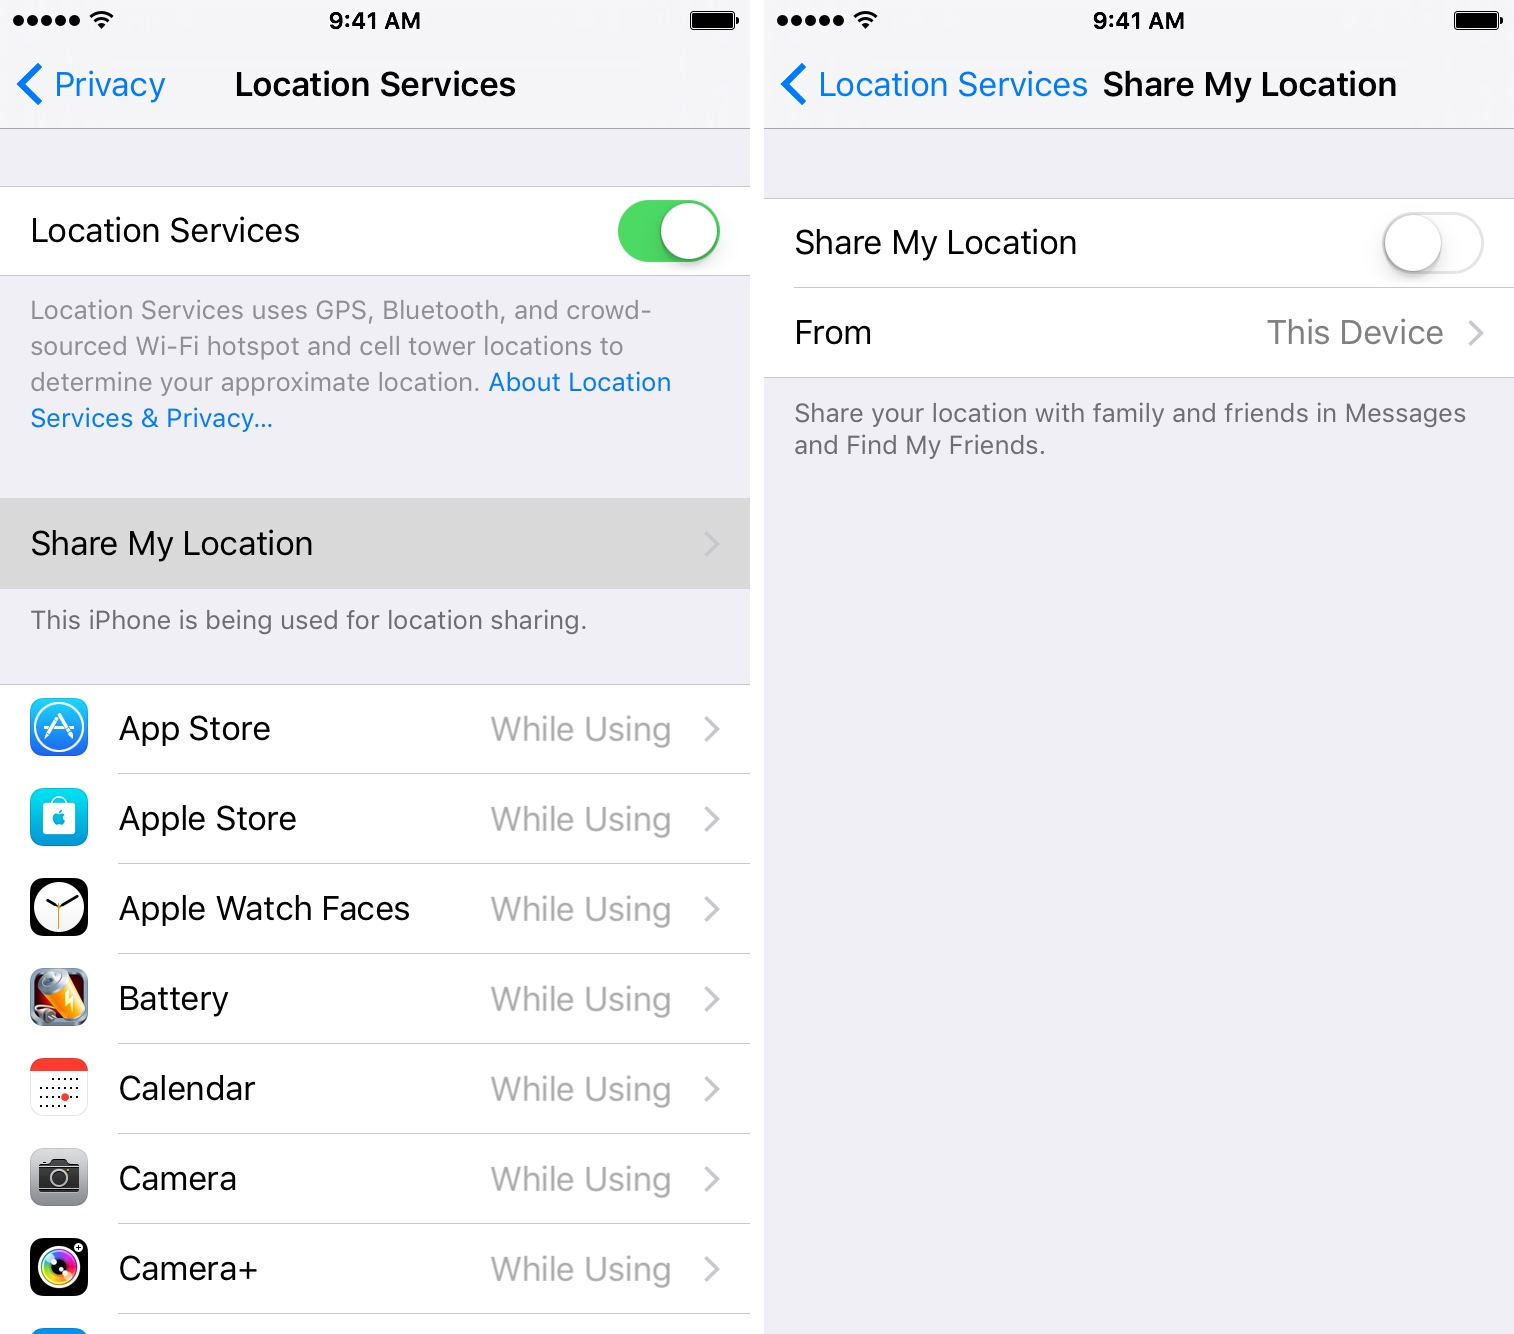 iOS 9 Settings Privacy Location Services Share My Location disabled iPhone screenshot 001